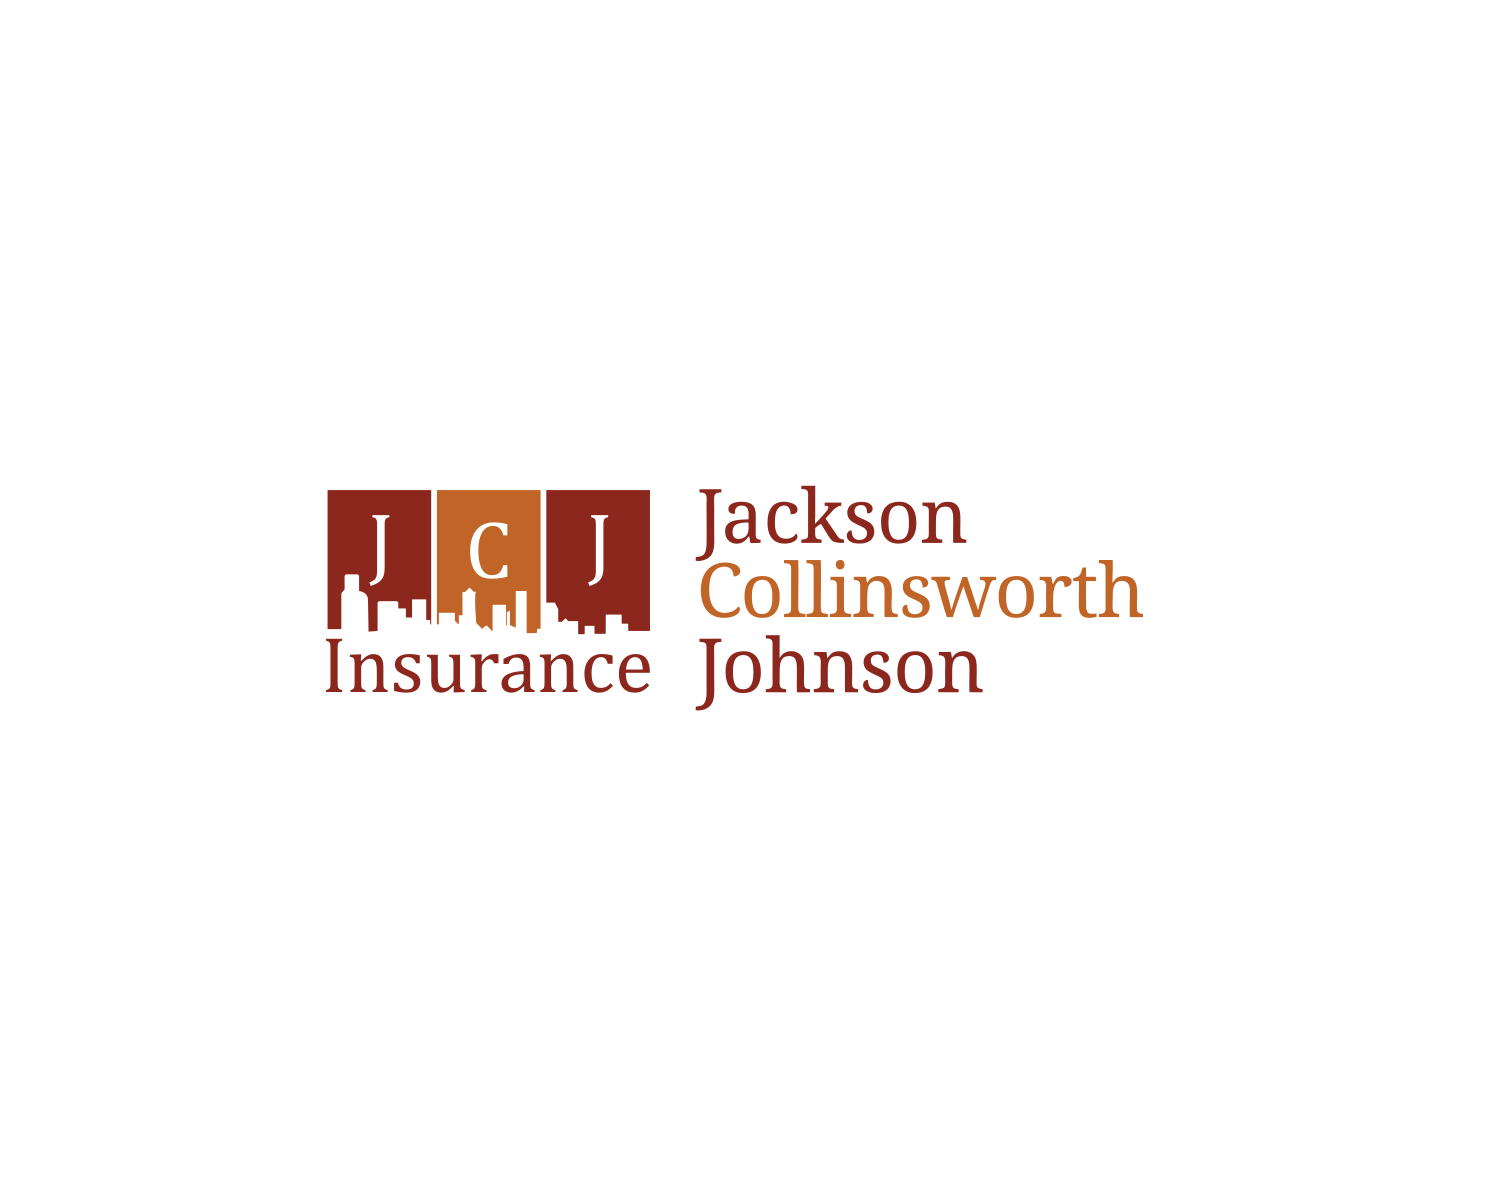 Update existing logo for commerical insurance agency.